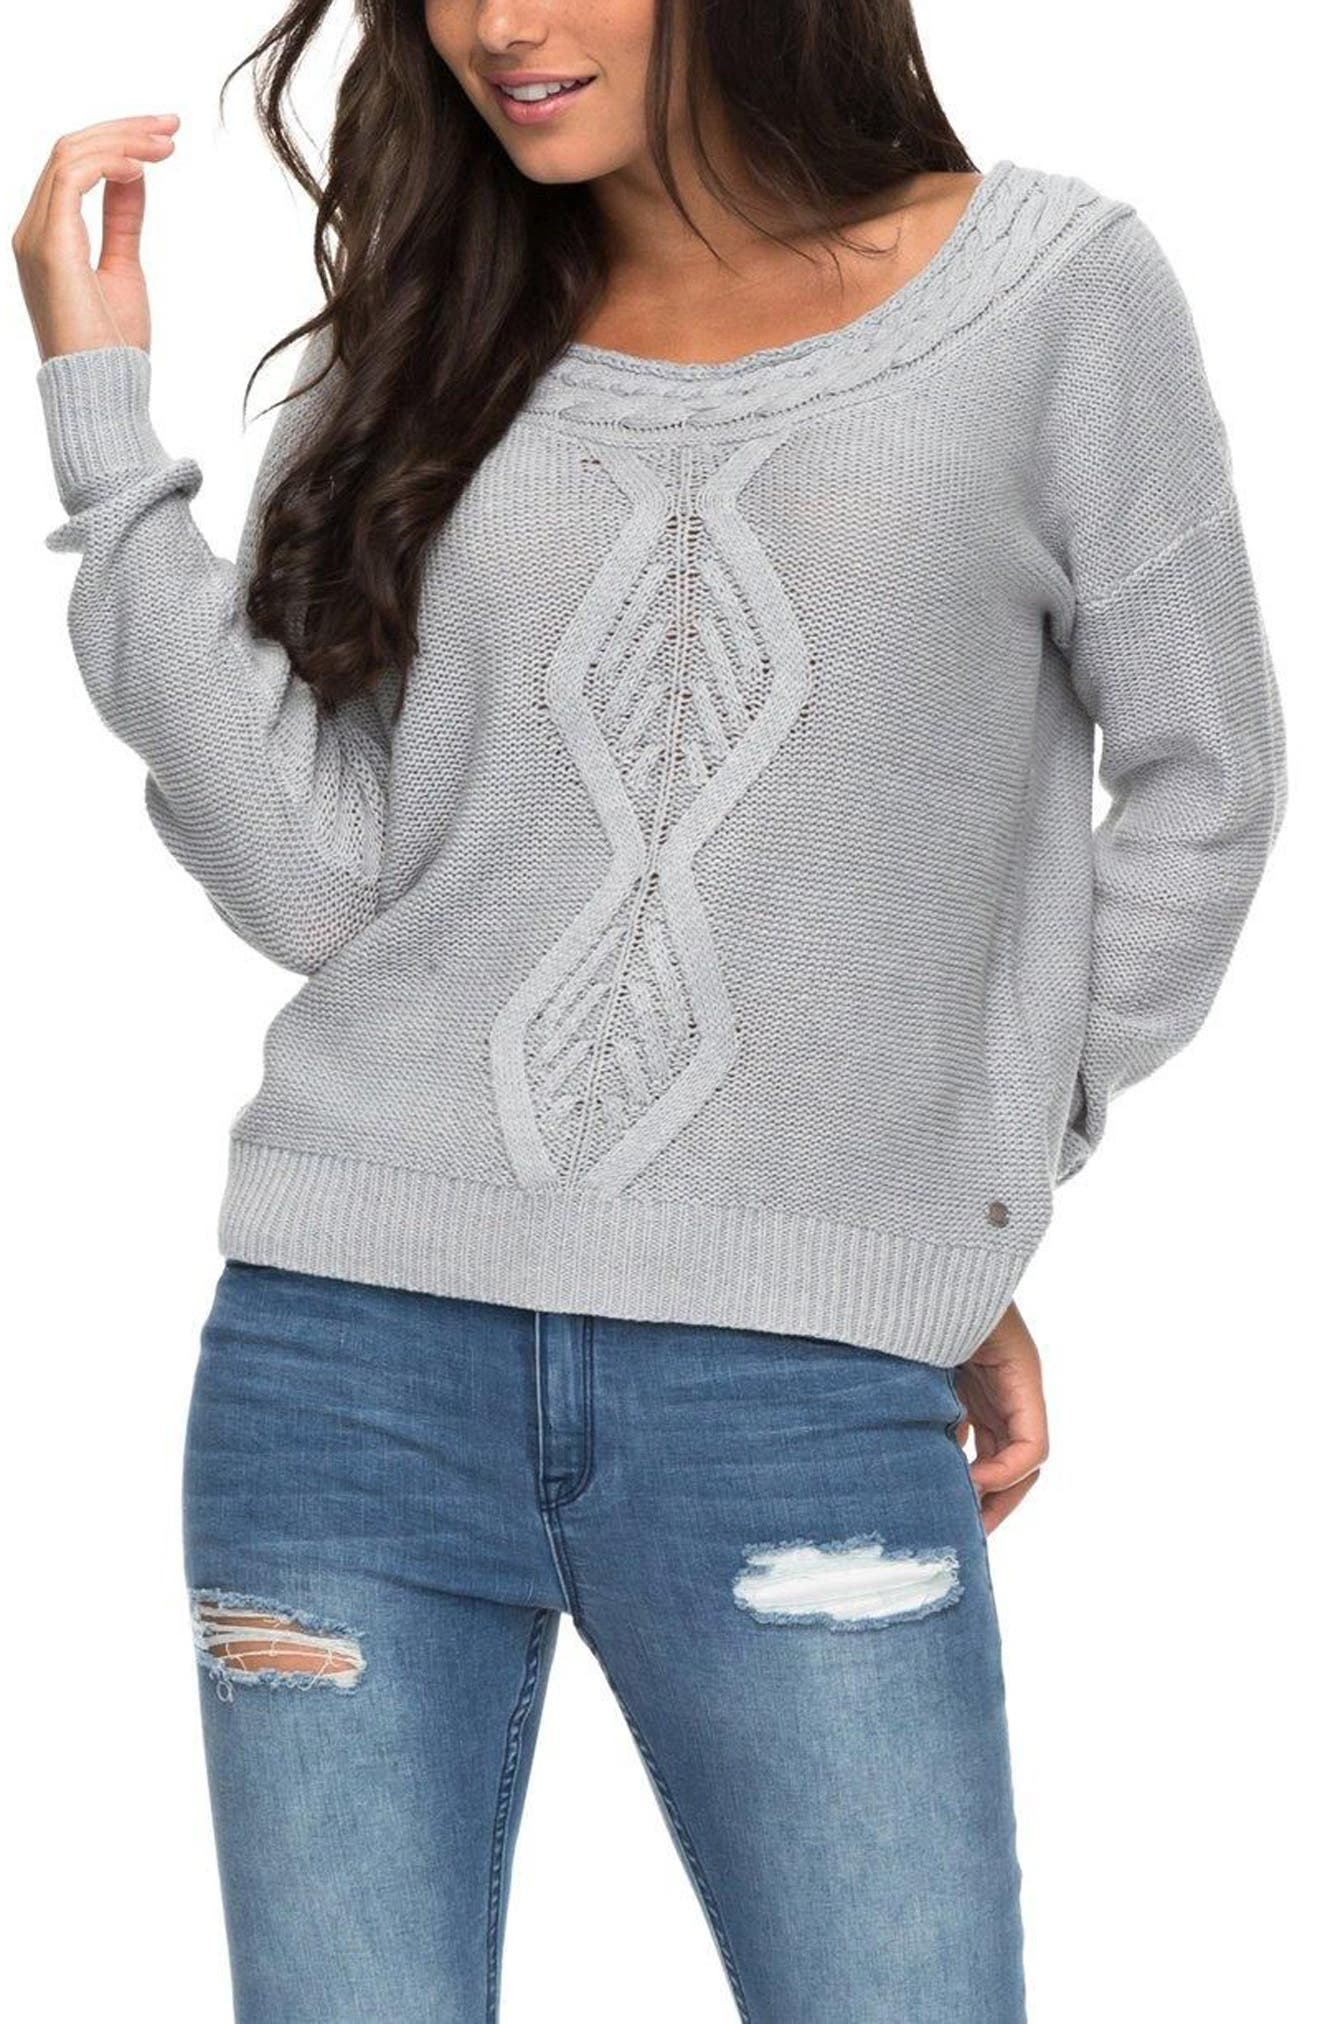 ROXY Choose to Shine Sweater, Main, color, 037